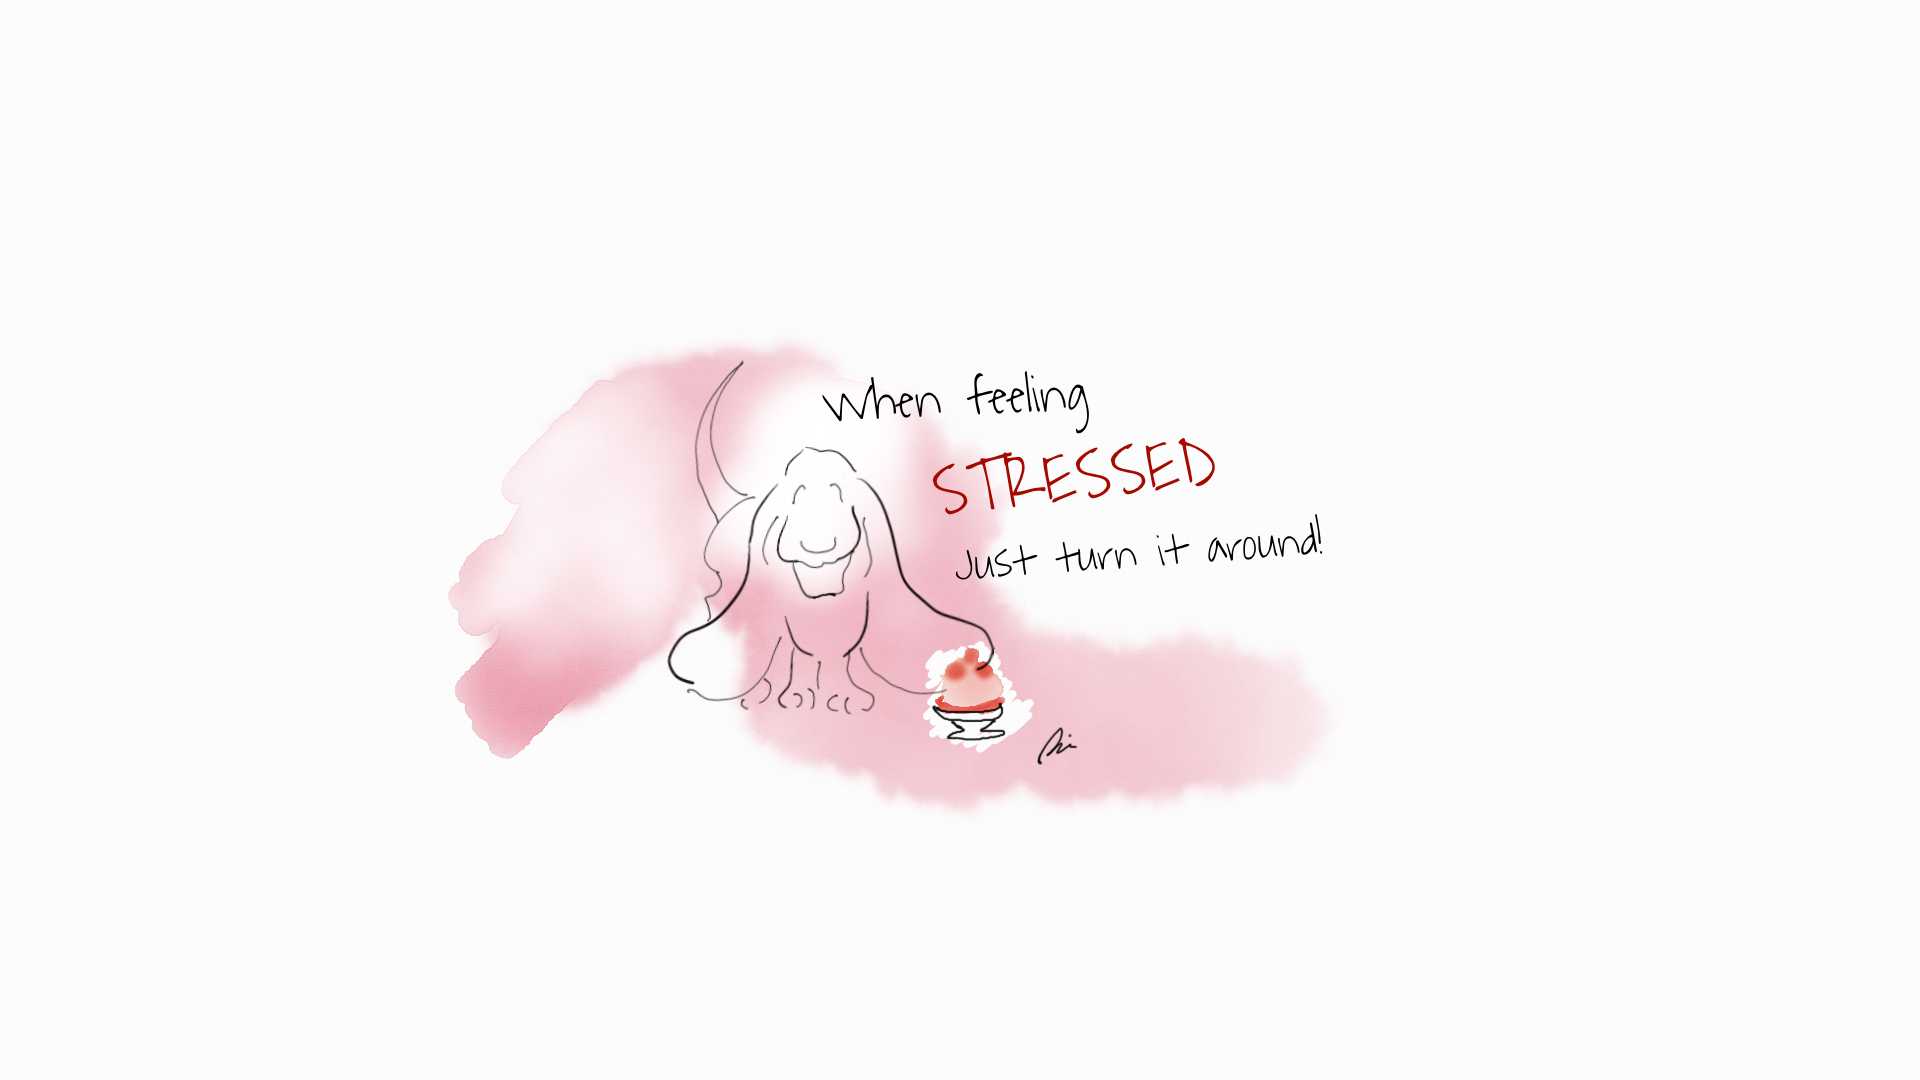 When feeling stressed, just turn it around!